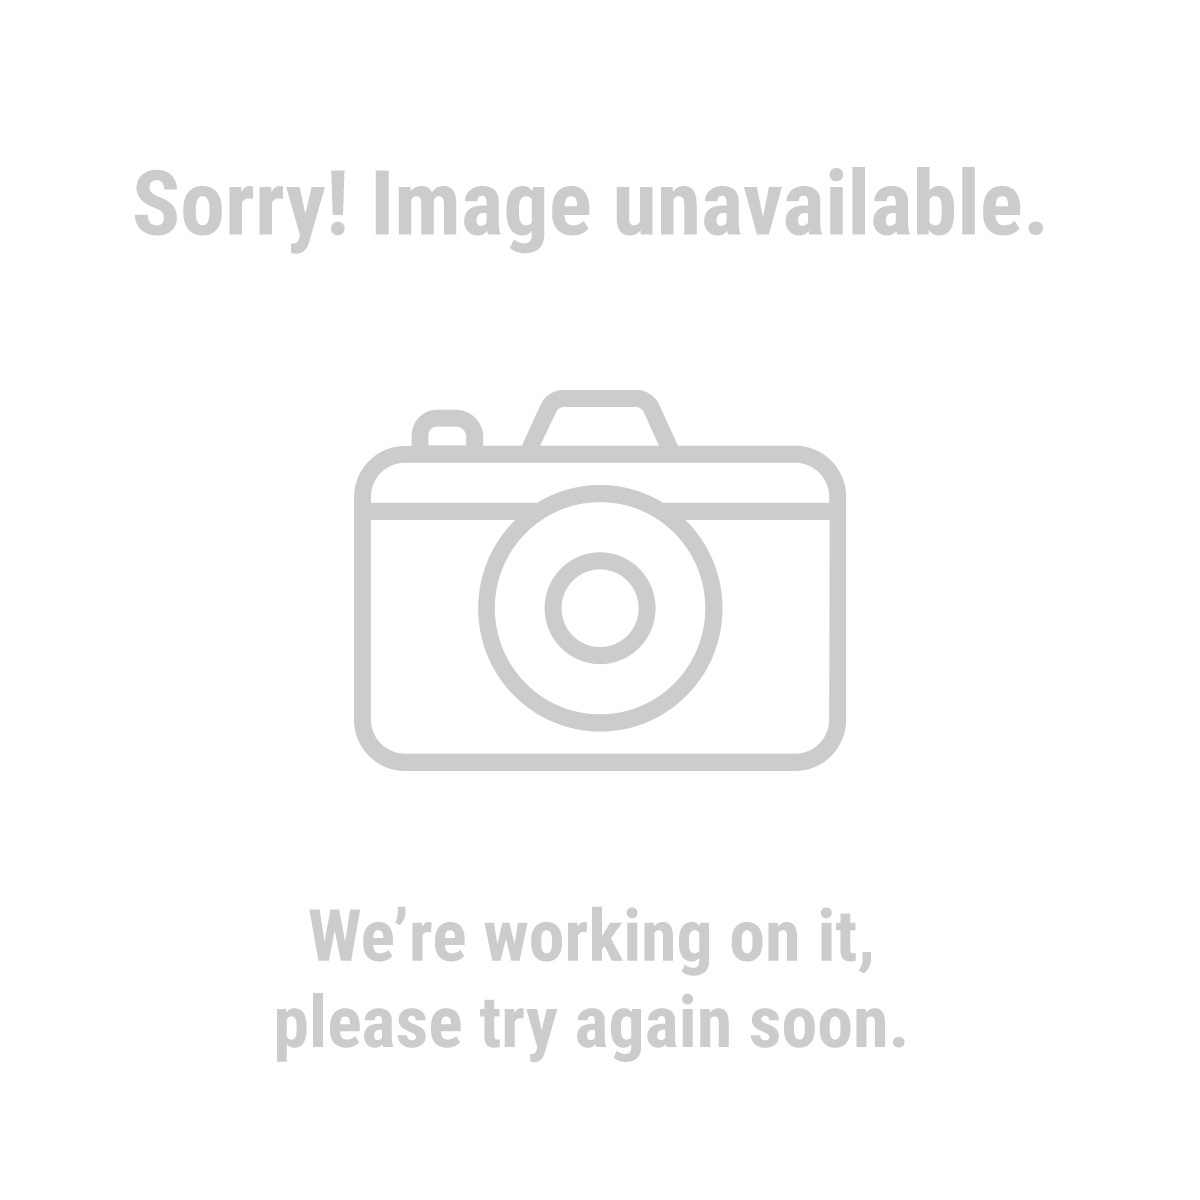 Portland Saw 65503 Pack of 2 Mini Hacksaw Replacement Blades